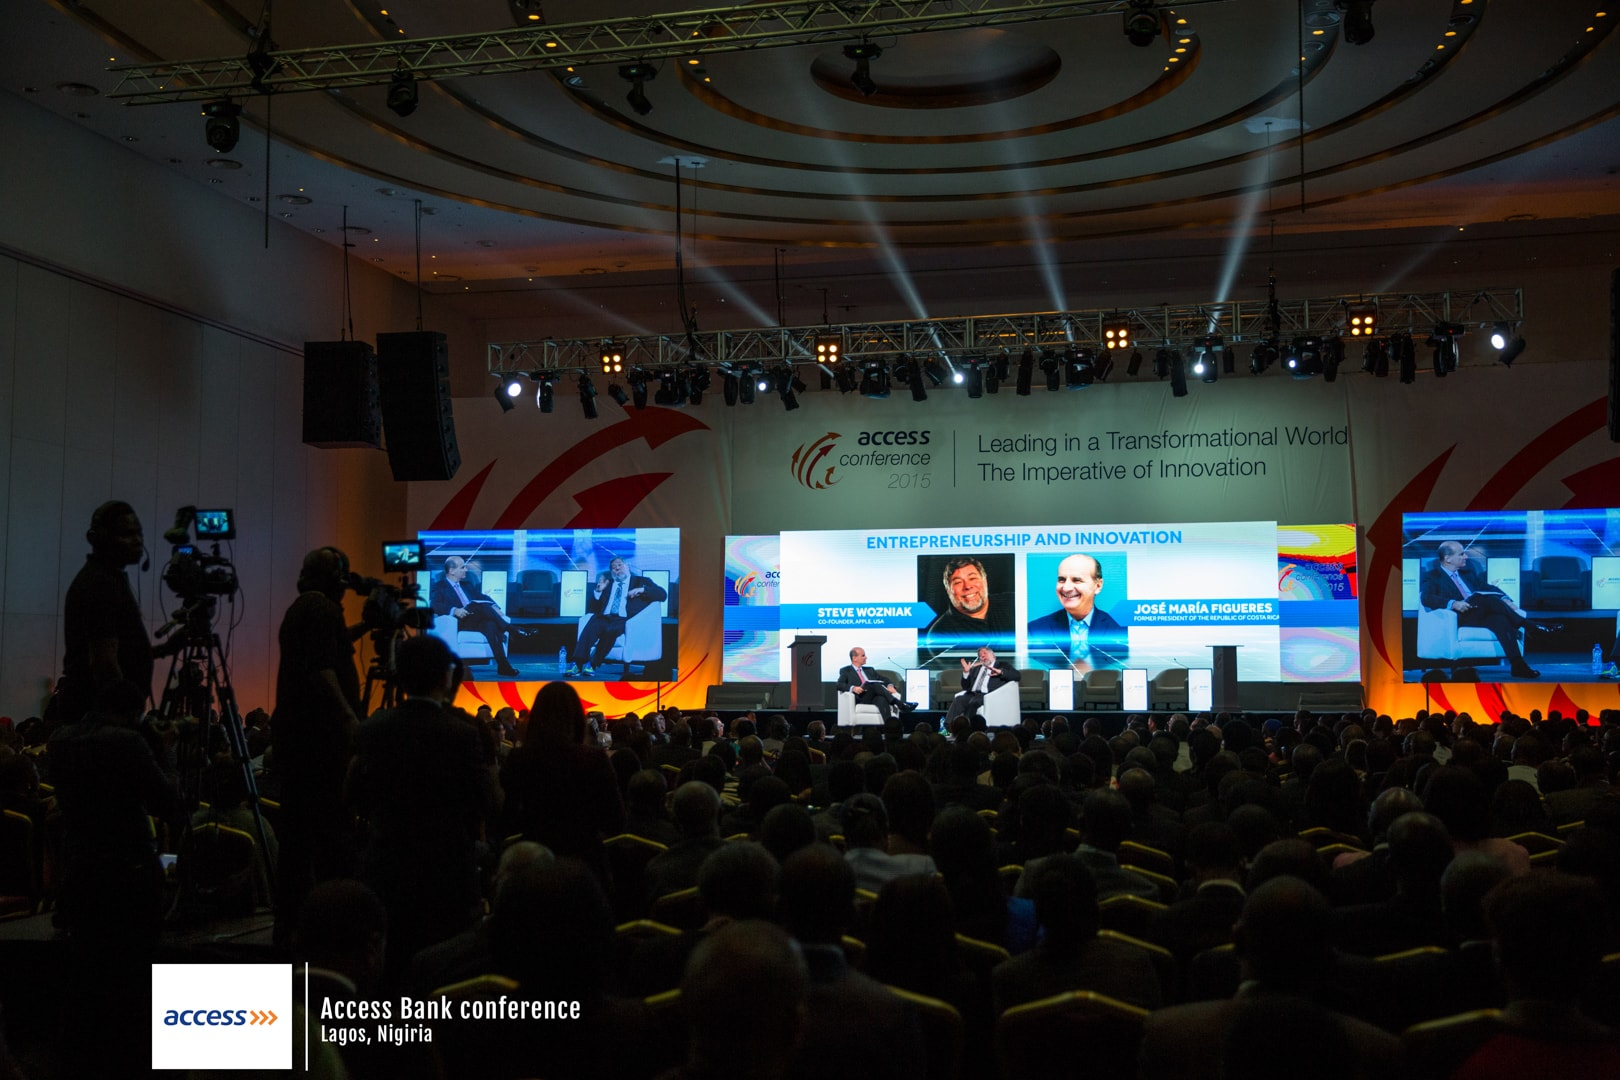 Event photography of the Access Bank conference